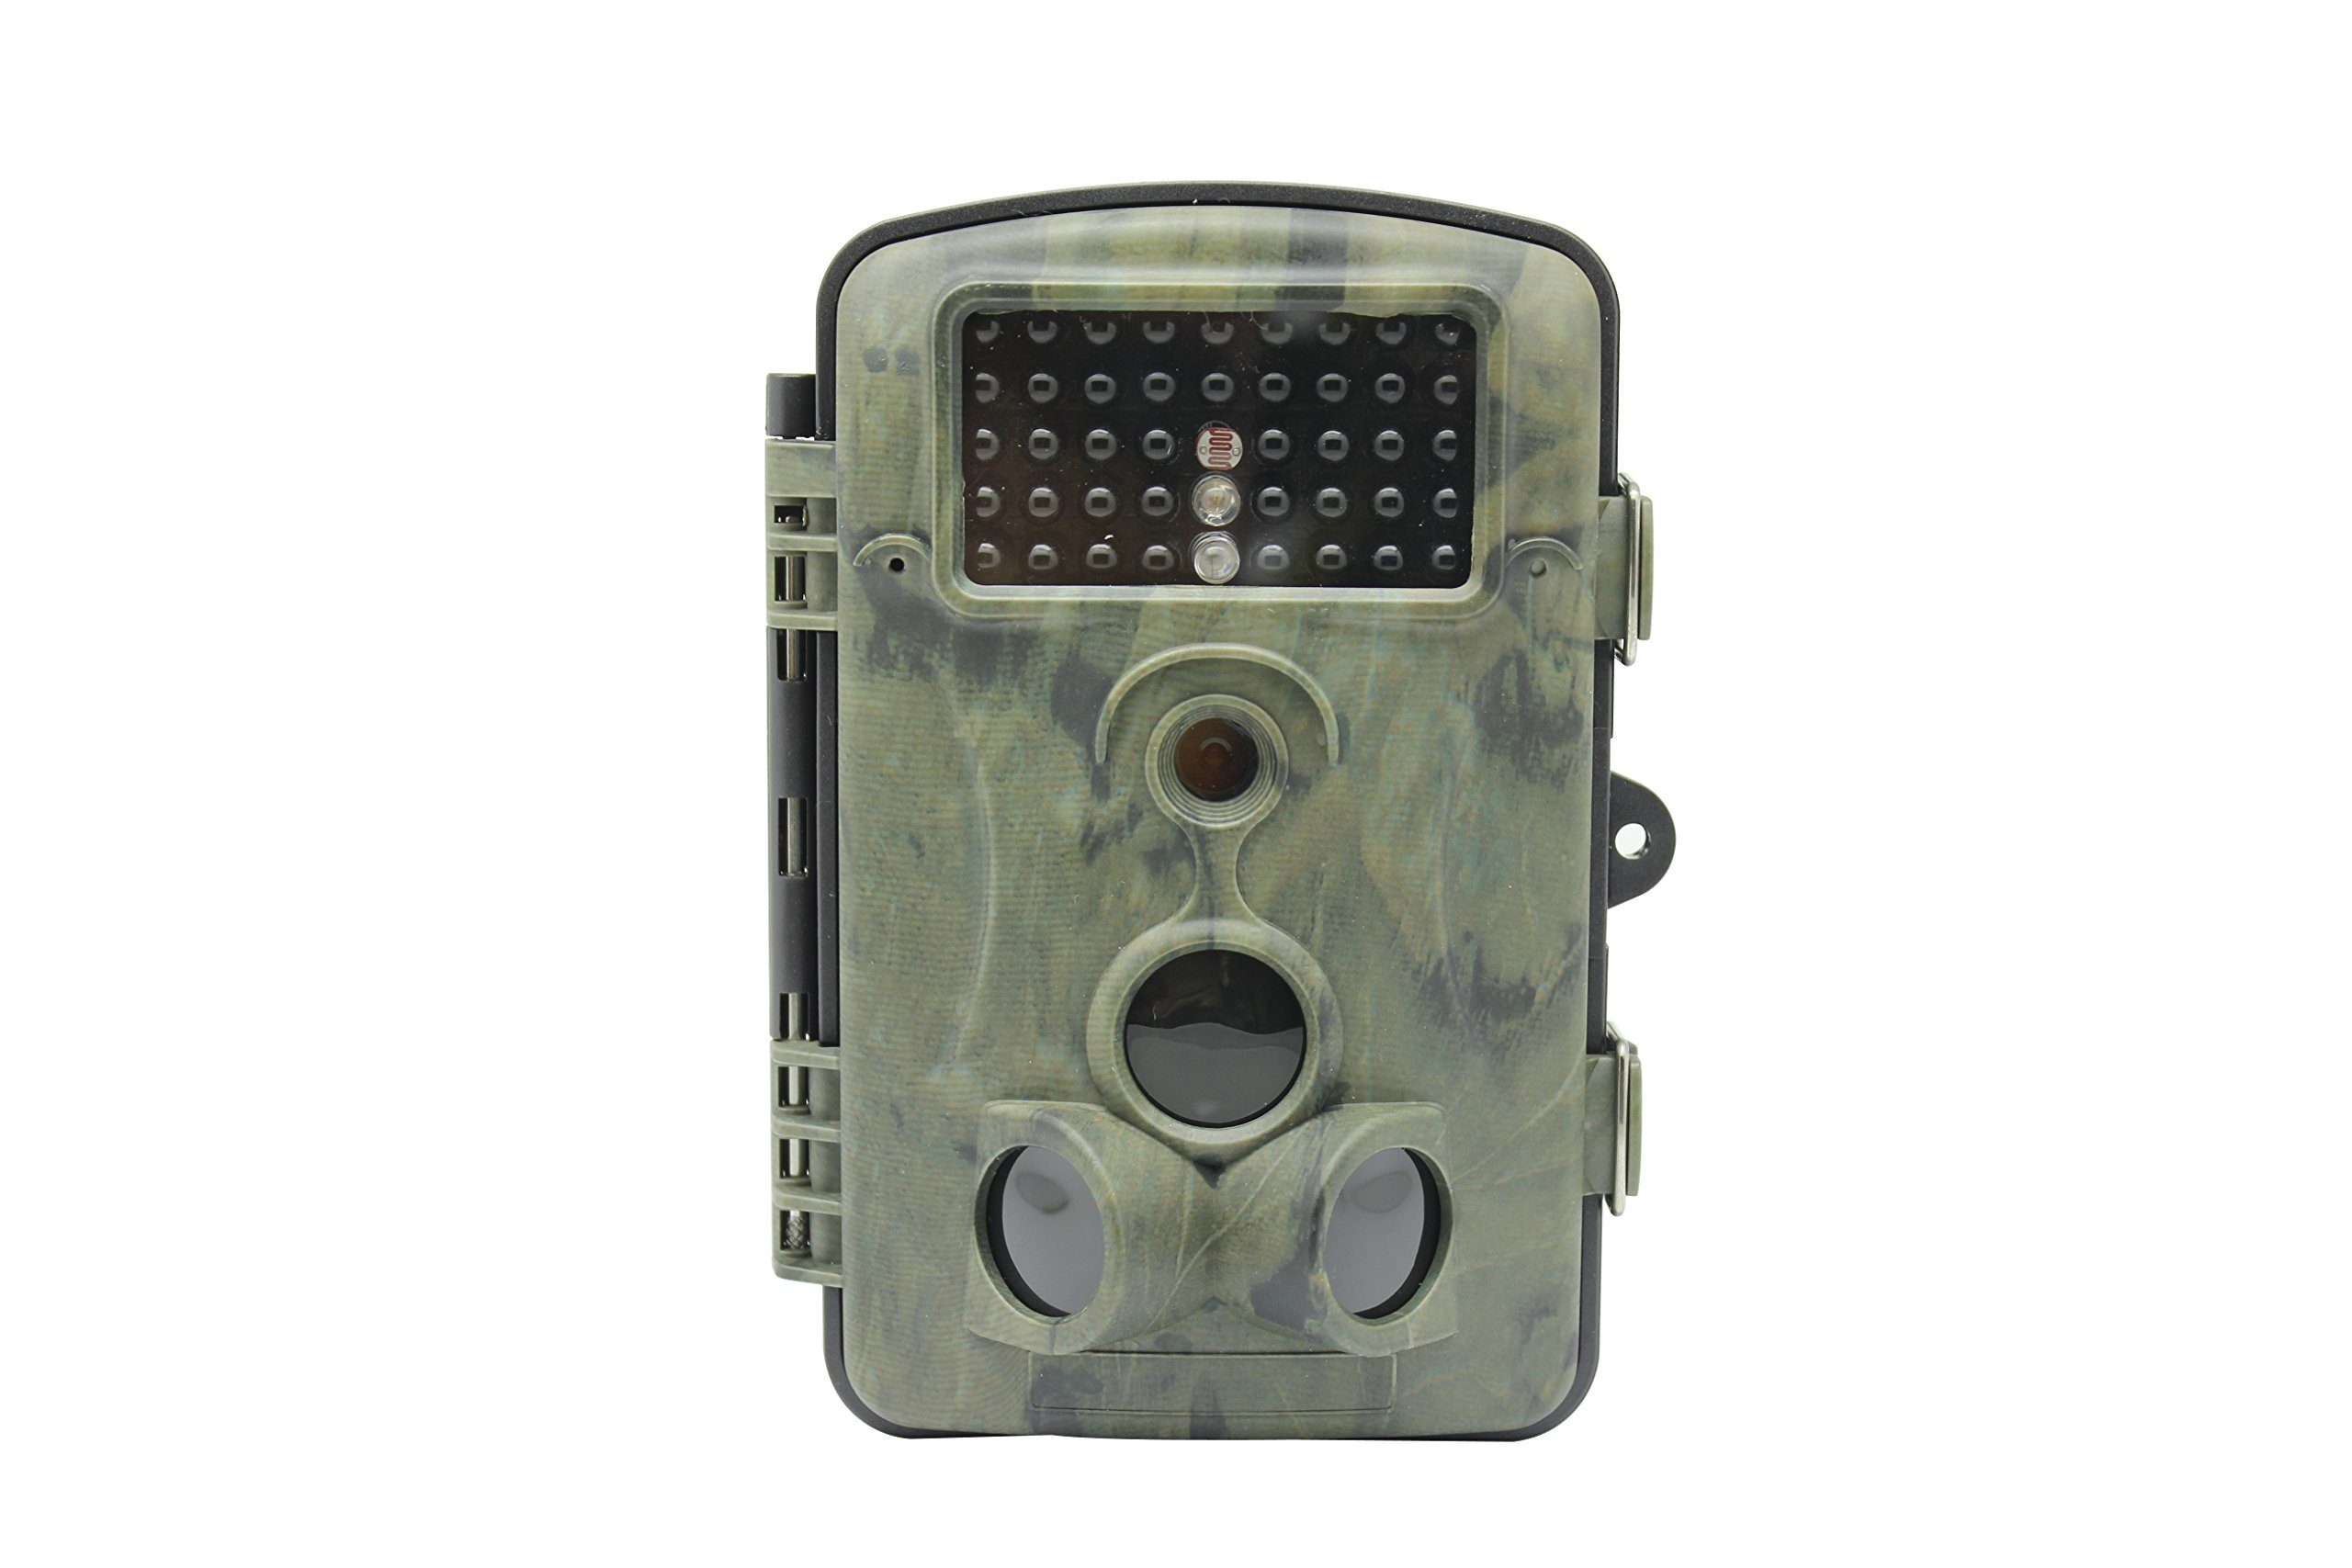 MDTEK 16GB SDHC Card RD1000 Hunting Trail Camera 12MP 1080P 2.4'' LCD Game &Hunting trail Camera with 42pcs LEDs Night Vision up to 20m IP54 Water Protected Design